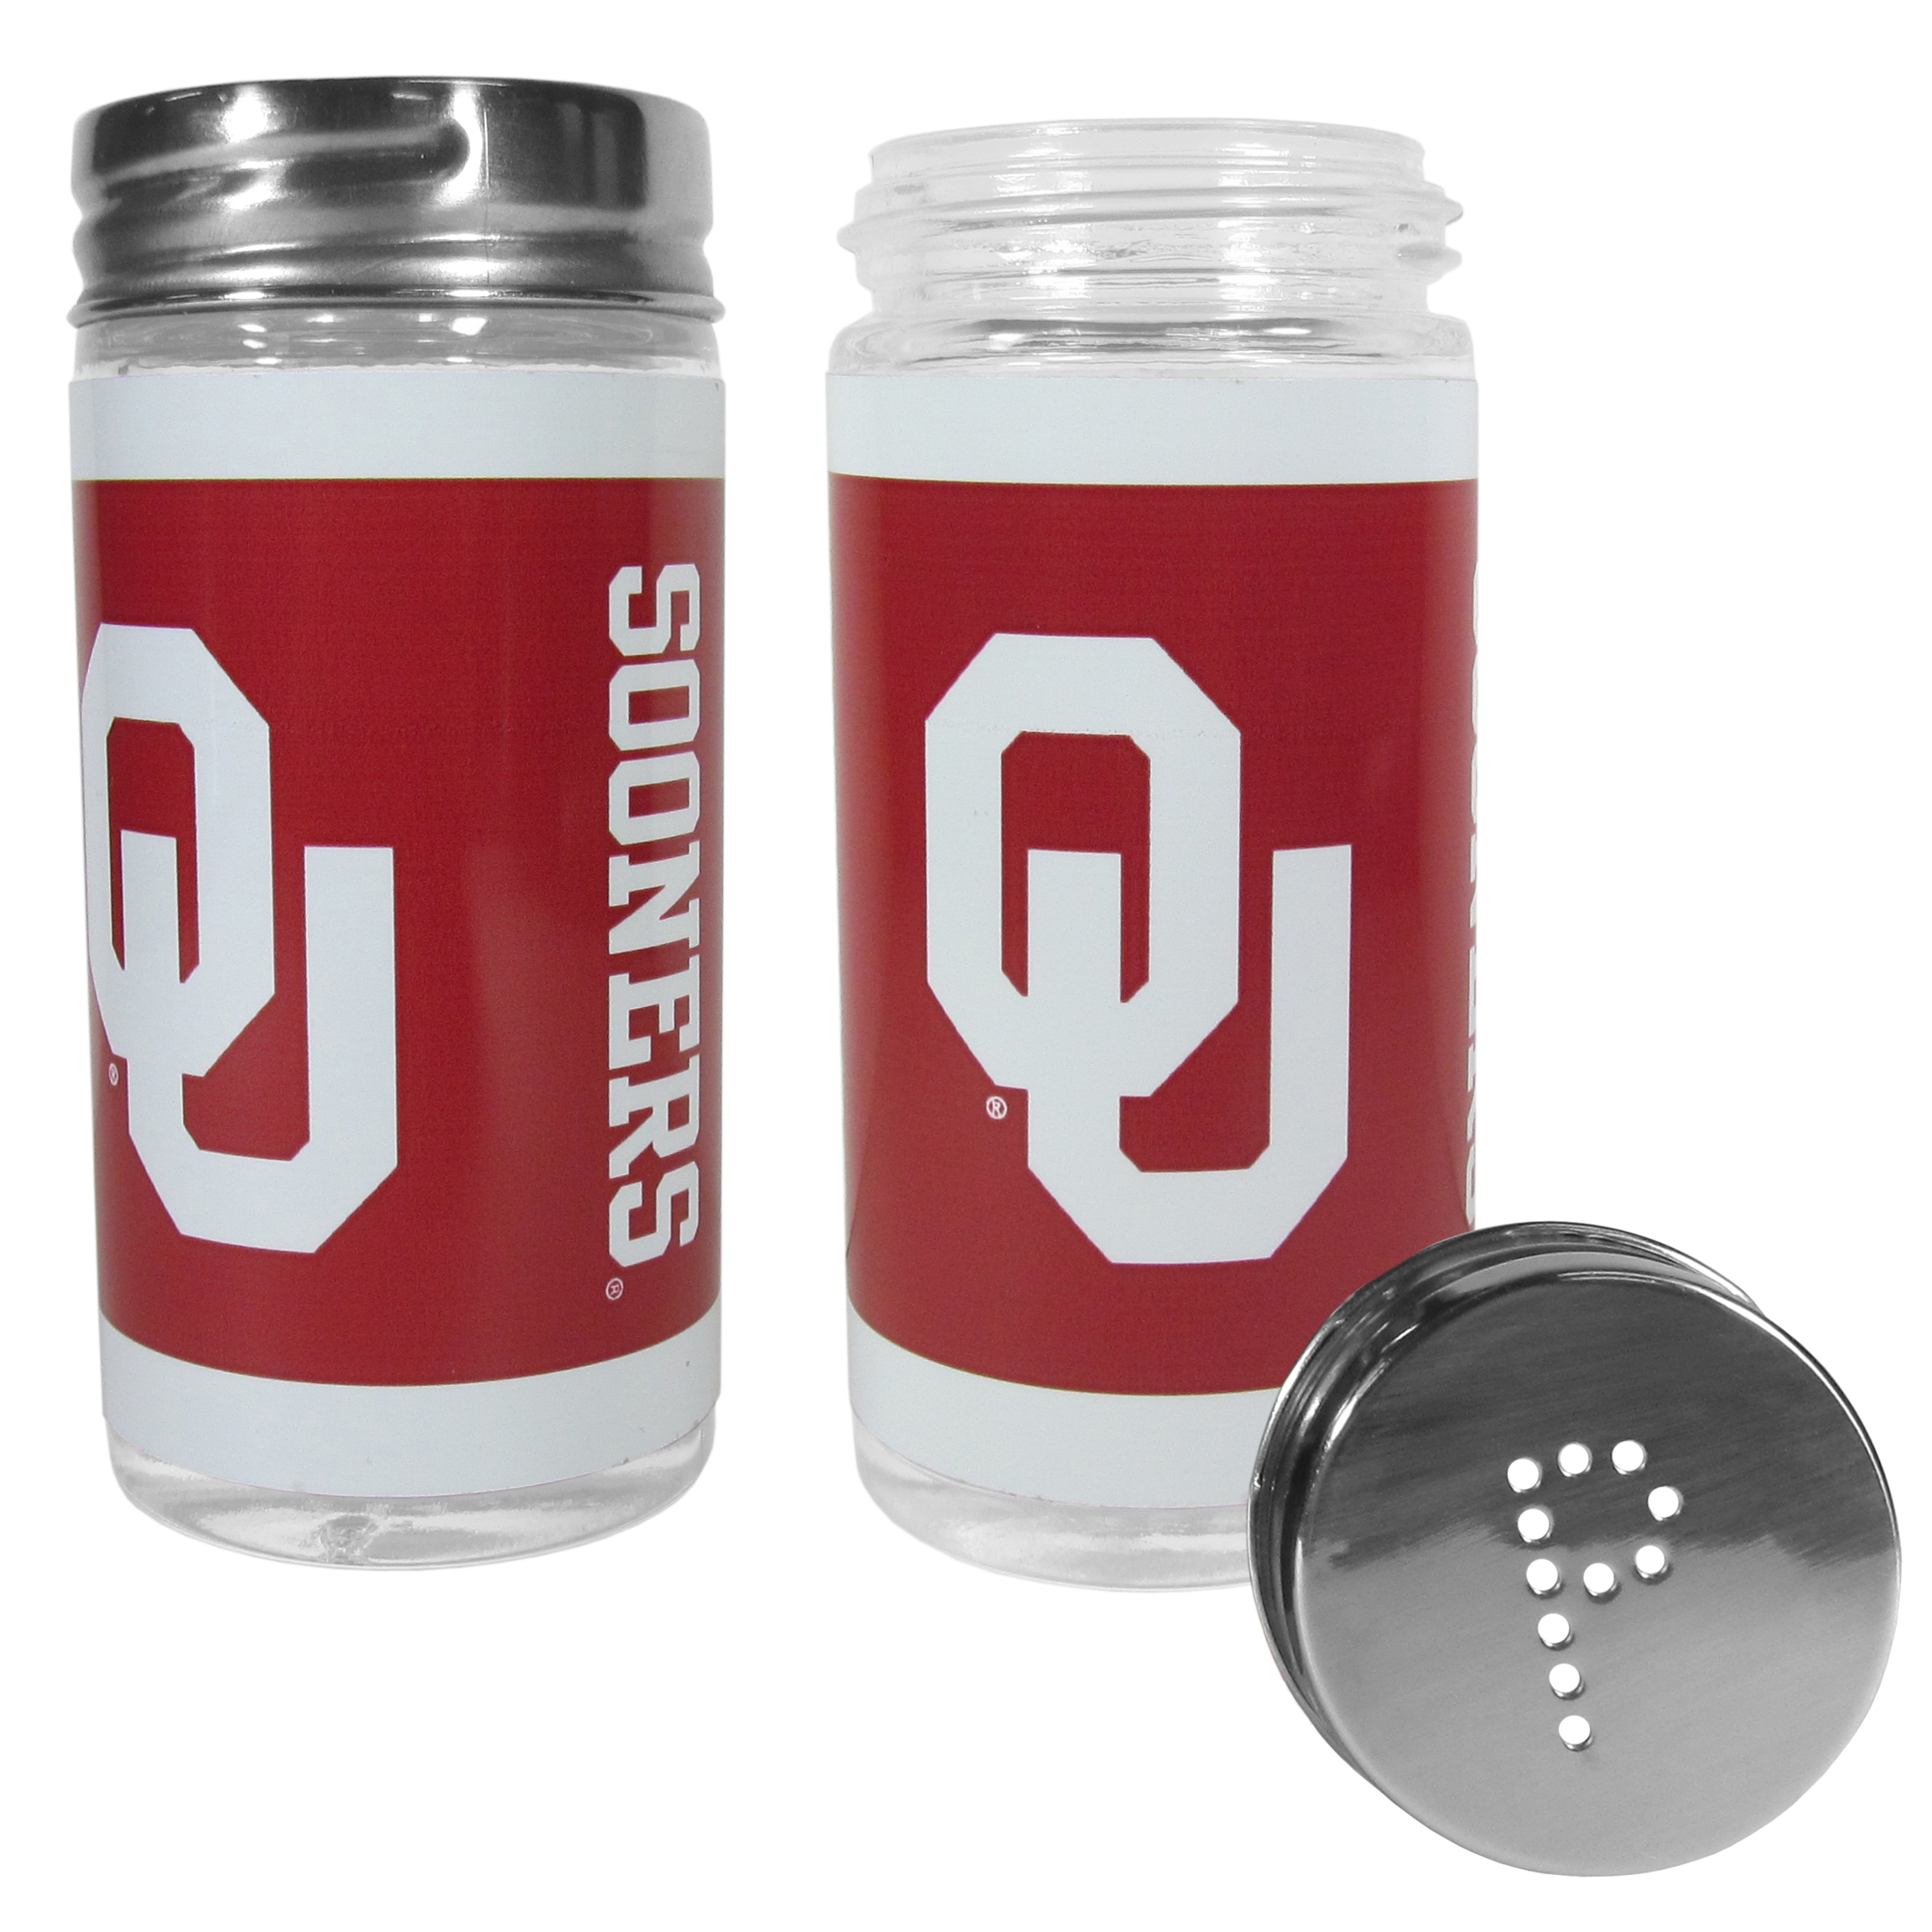 Oklahoma Sooners Tailgater Salt and Pepper Shakers - No tailgate party is complete without your Oklahoma Sooners salt & pepper shakers featuring bright team graphics. The glass shakers are 3.75 inches tall and the screw top lids have holes that spell out P and S. These team shakers are a great grill accessory whether you are barbecuing on the patio, picnicing or having a game day party.